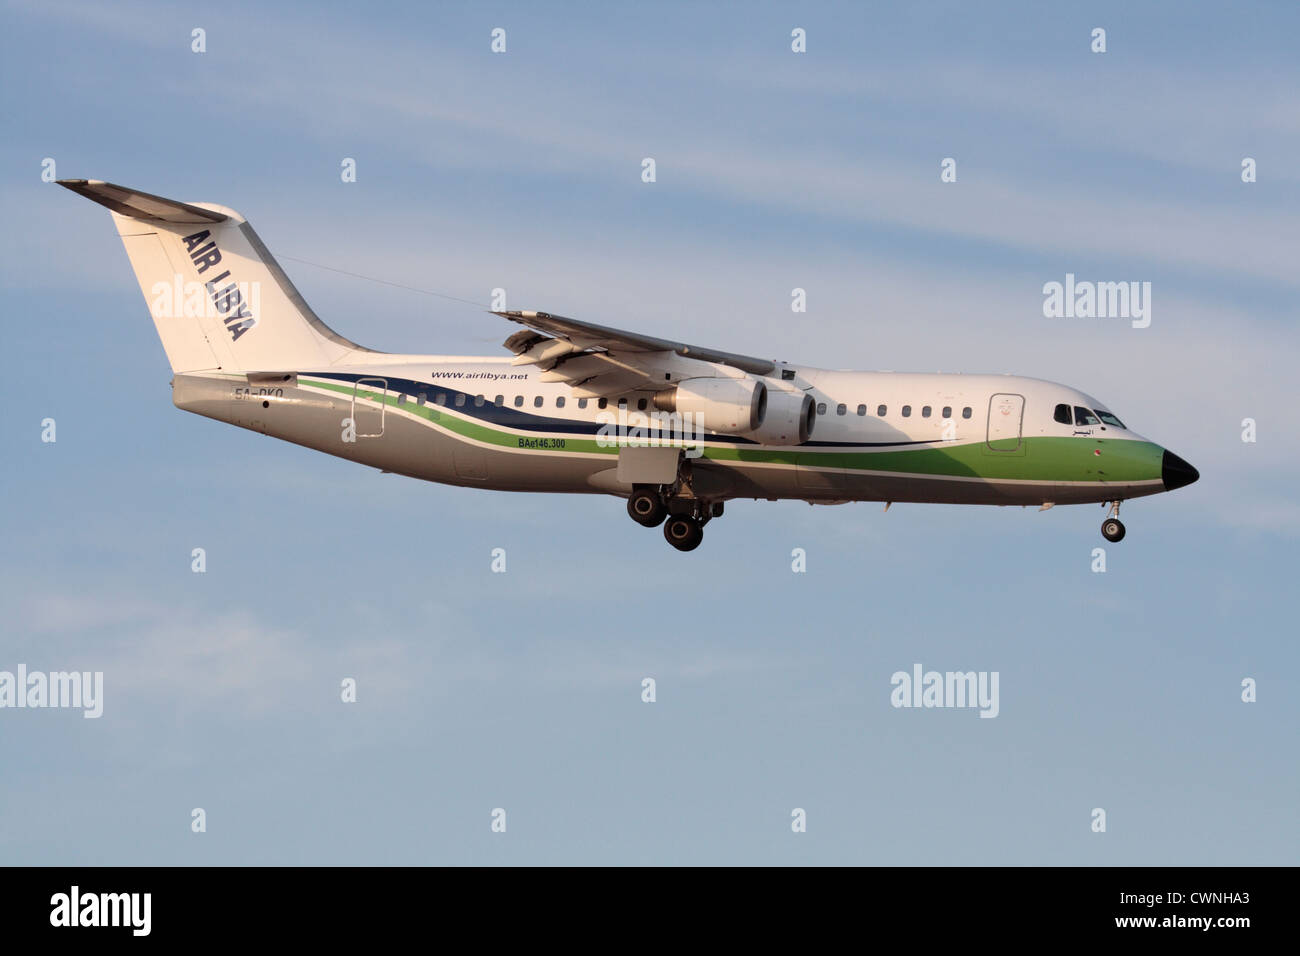 Air Libya BAe 146 regional jetliner Stock Photo